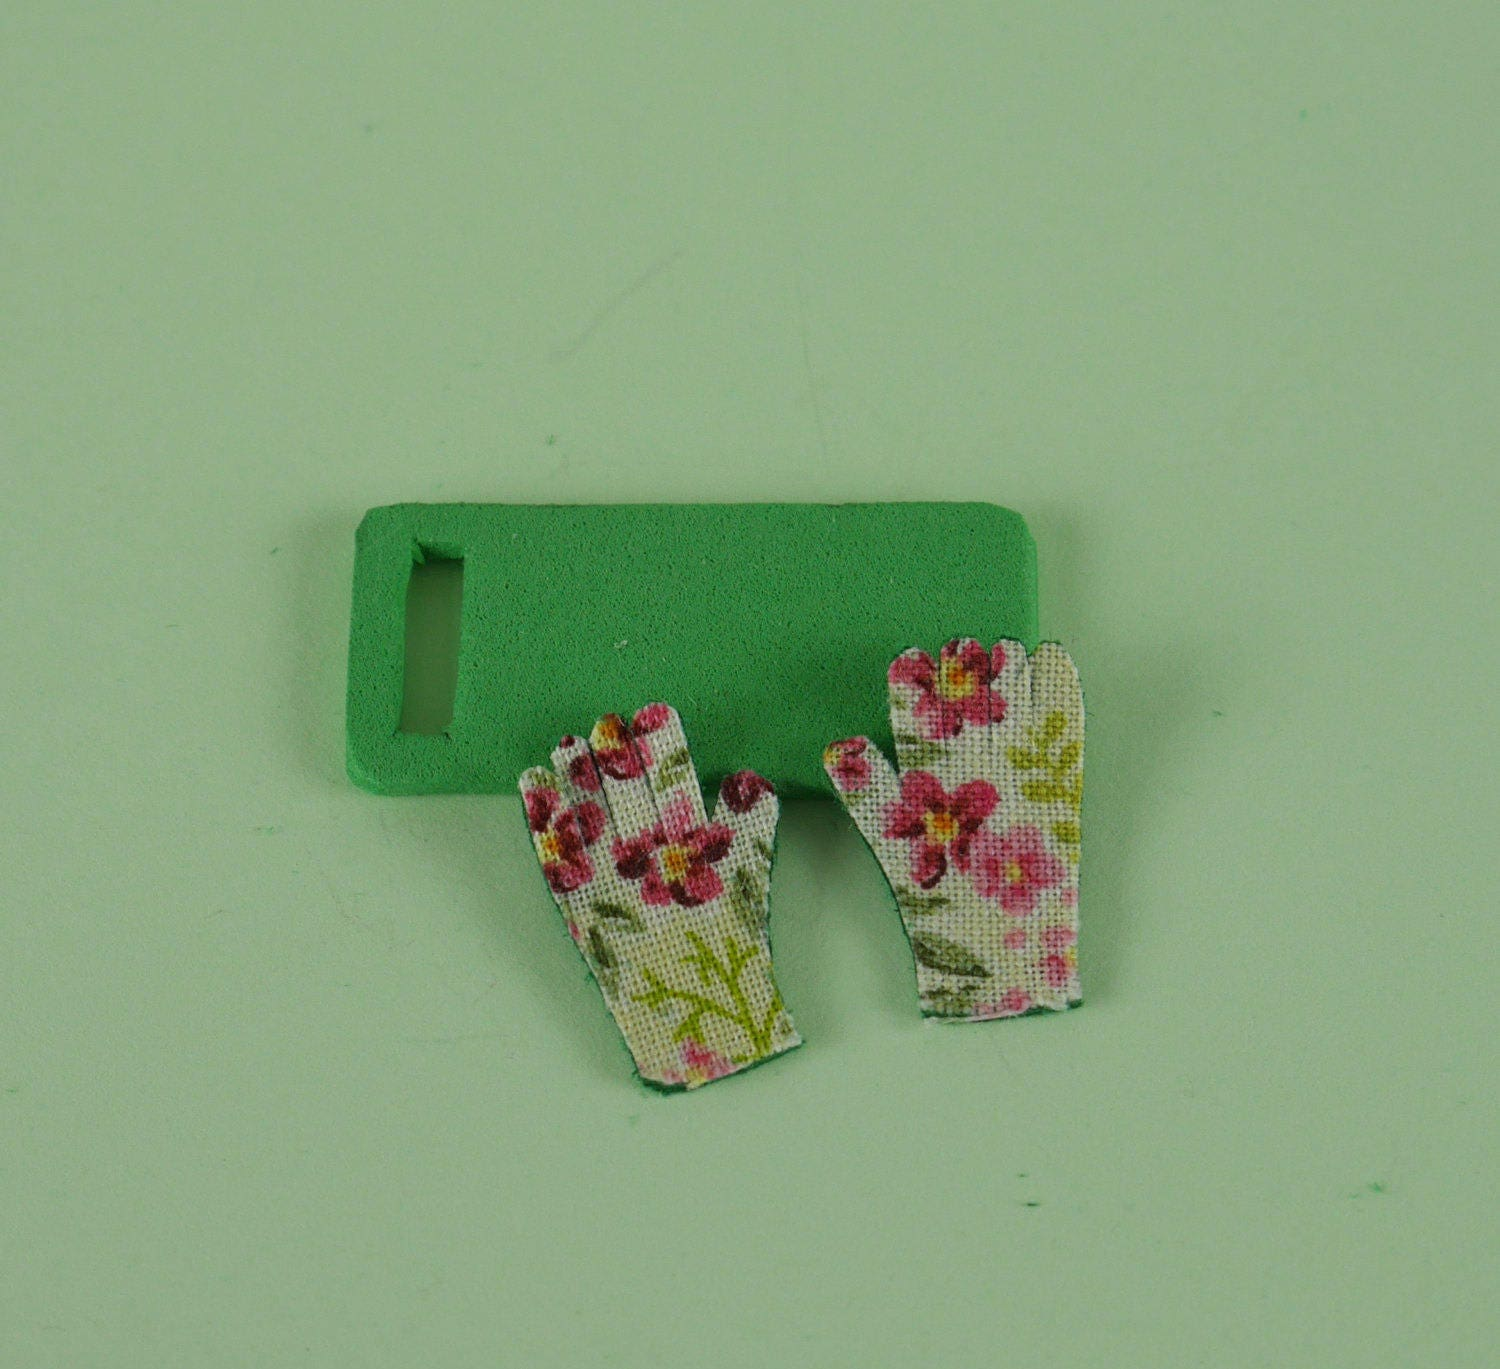 Floral Ladies Gardening Gloves and Green Kneeling Pad   112 or 112 Scale Dollhouse Miniature Potting Bench Garden Shed Greenhouse